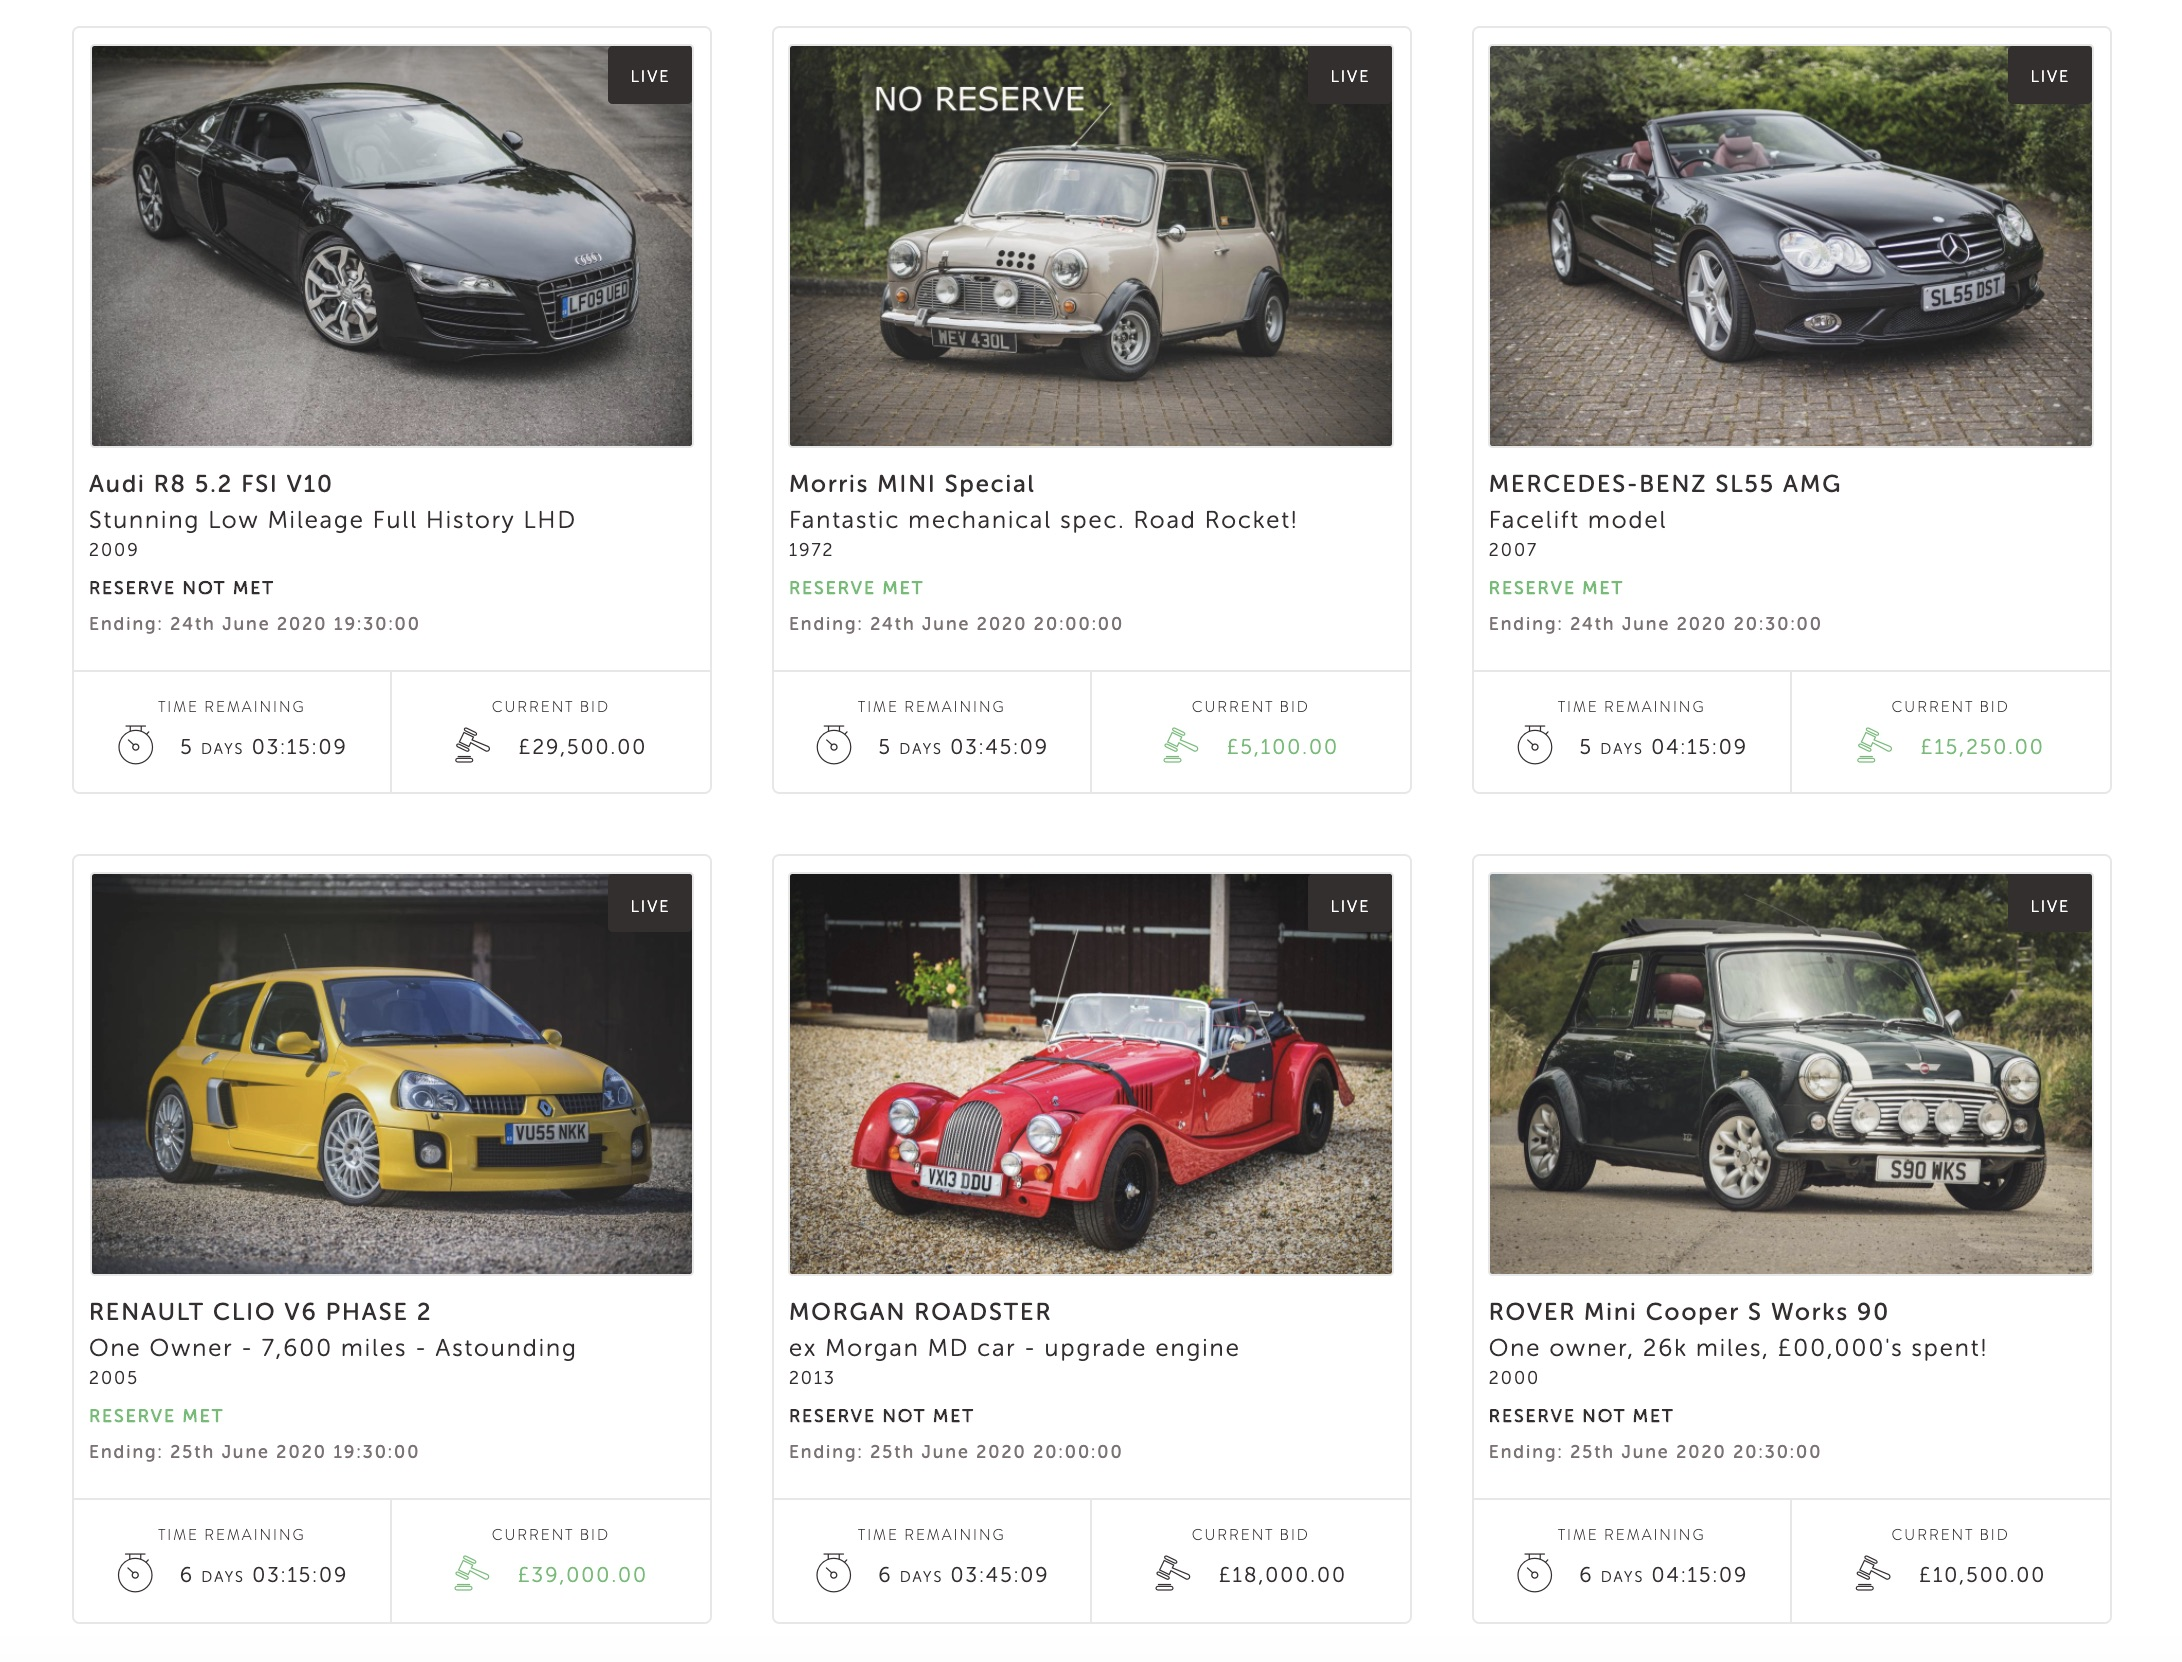 Click and collect: the rise of online classic car sales